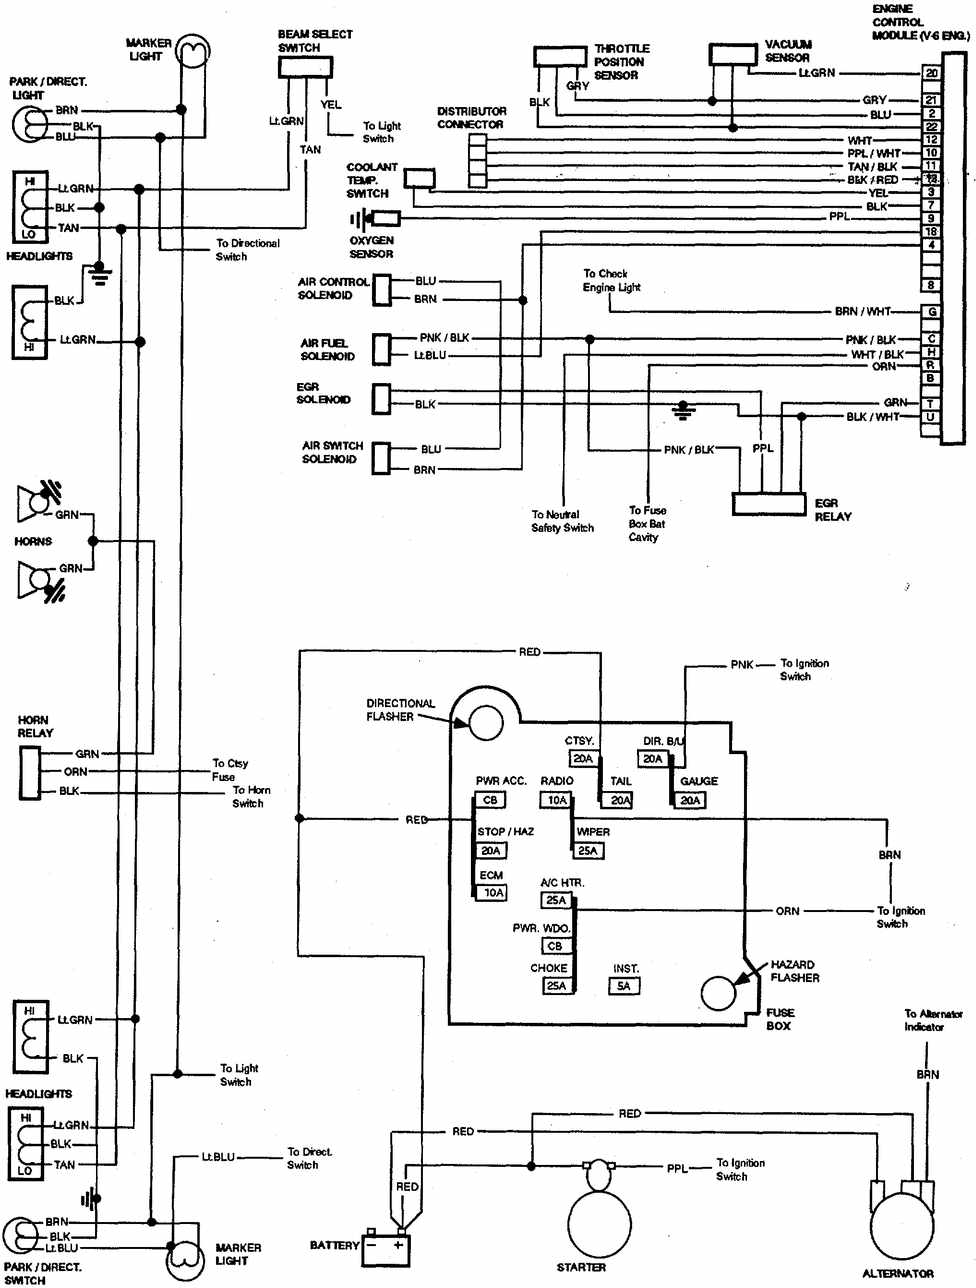 1987 chevy truck headlight wiring diagram 1987 chevy truck alternator wiring diagram